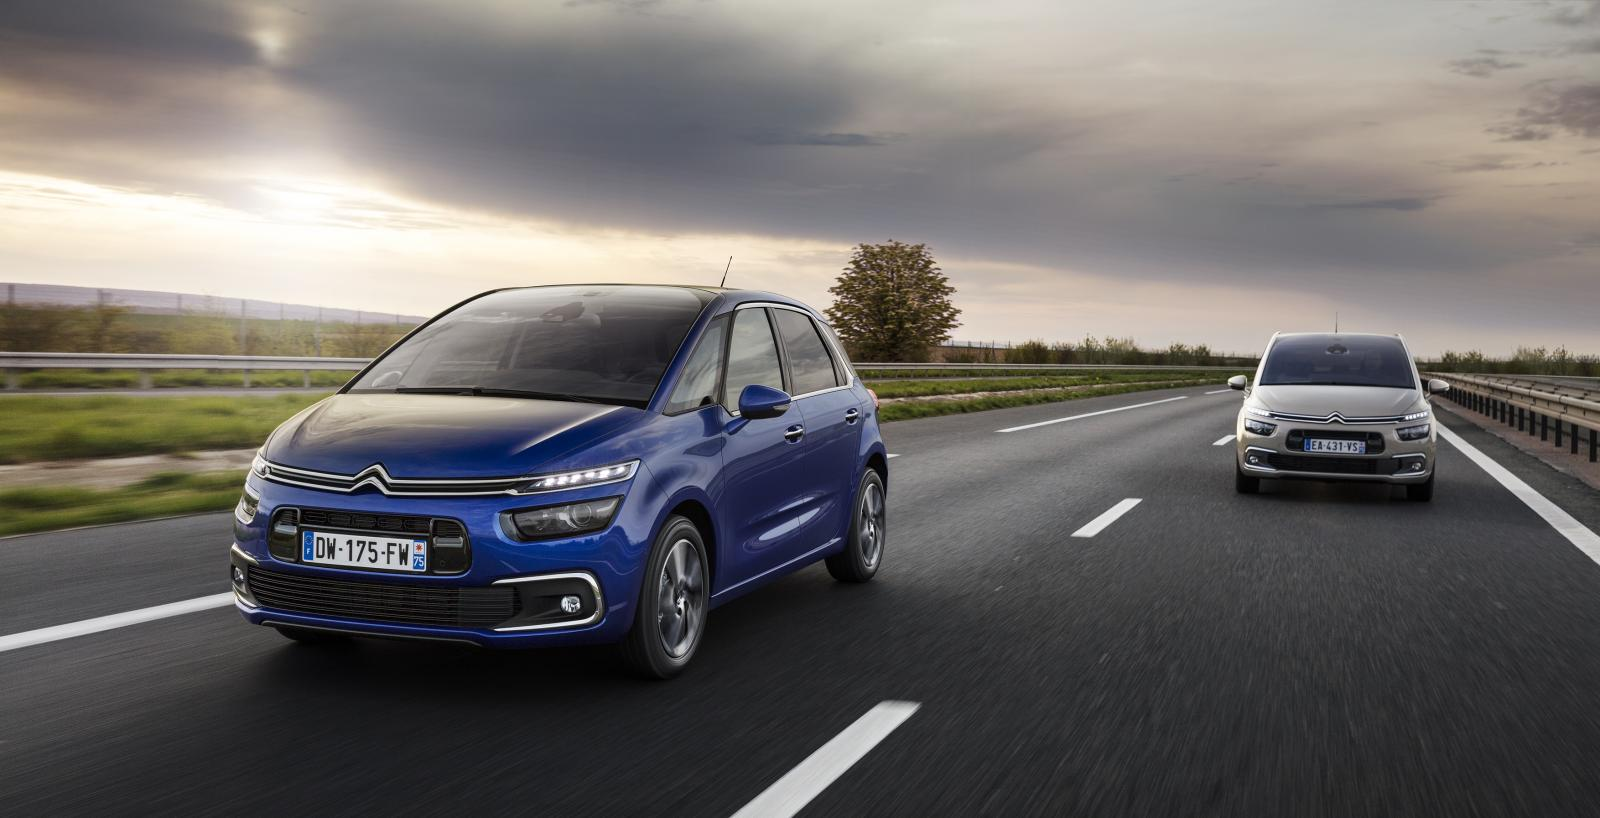 C4 Picasso Shine 2016 et Grand C4 Picasso Shine 2016